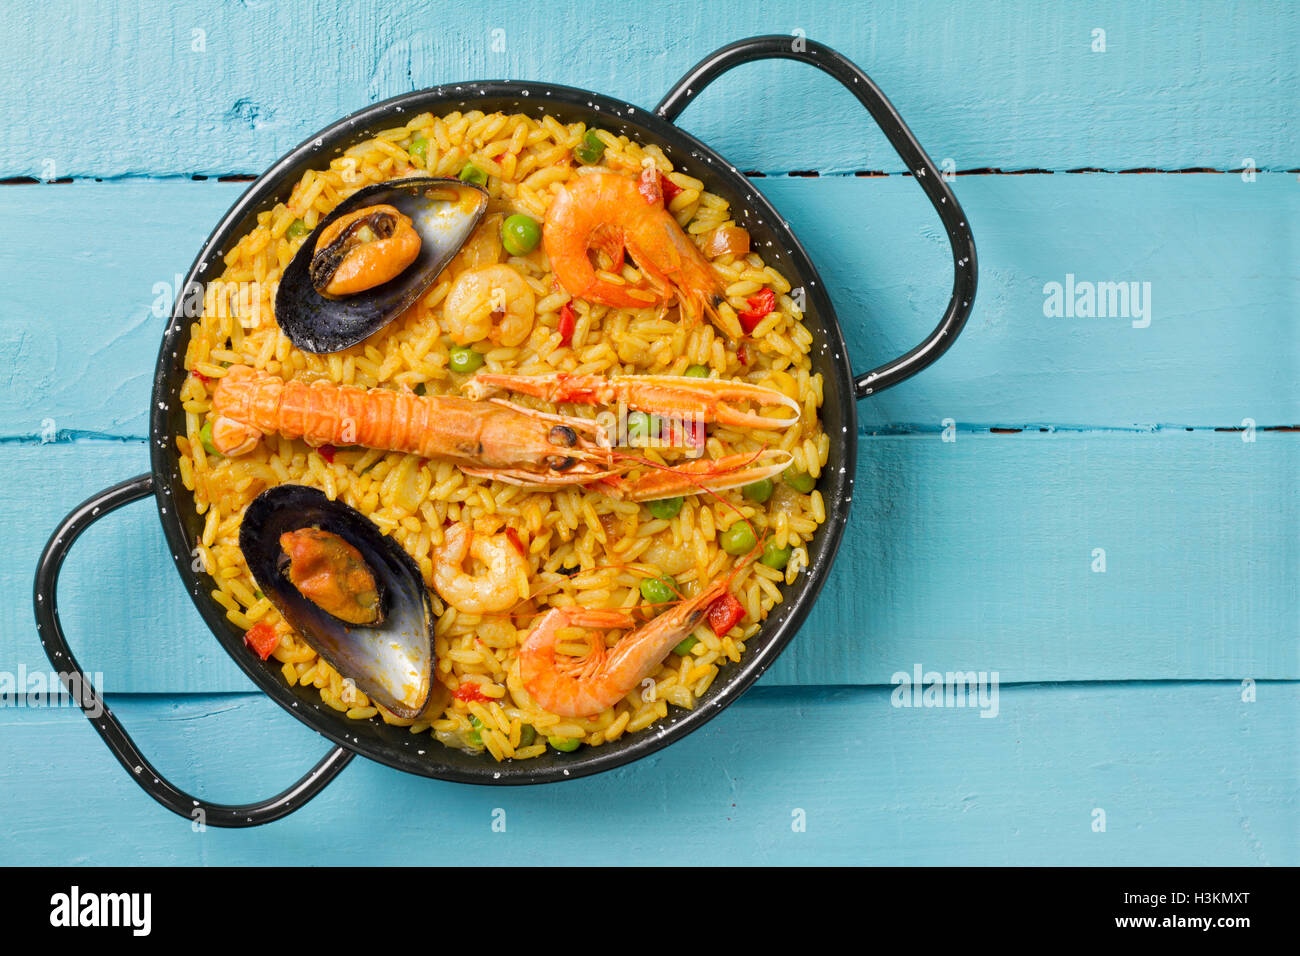 Spanish paella on a blue wooden table with copy space on the right - Stock Image